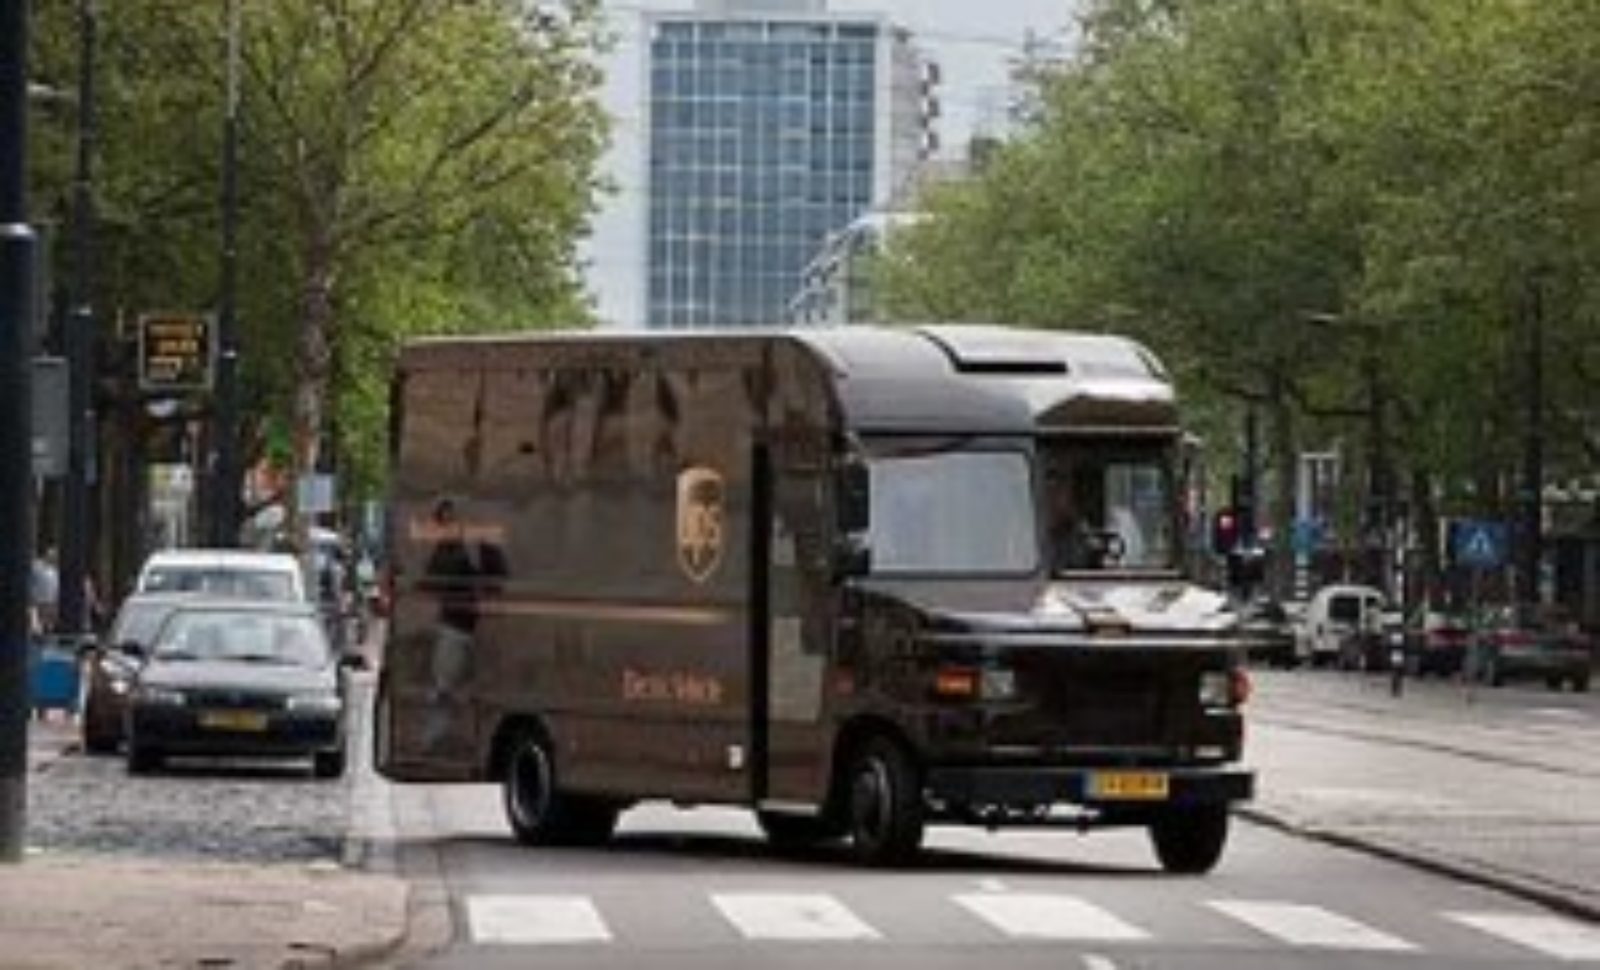 71pc European online shoppers buy outside of home country, says UPS